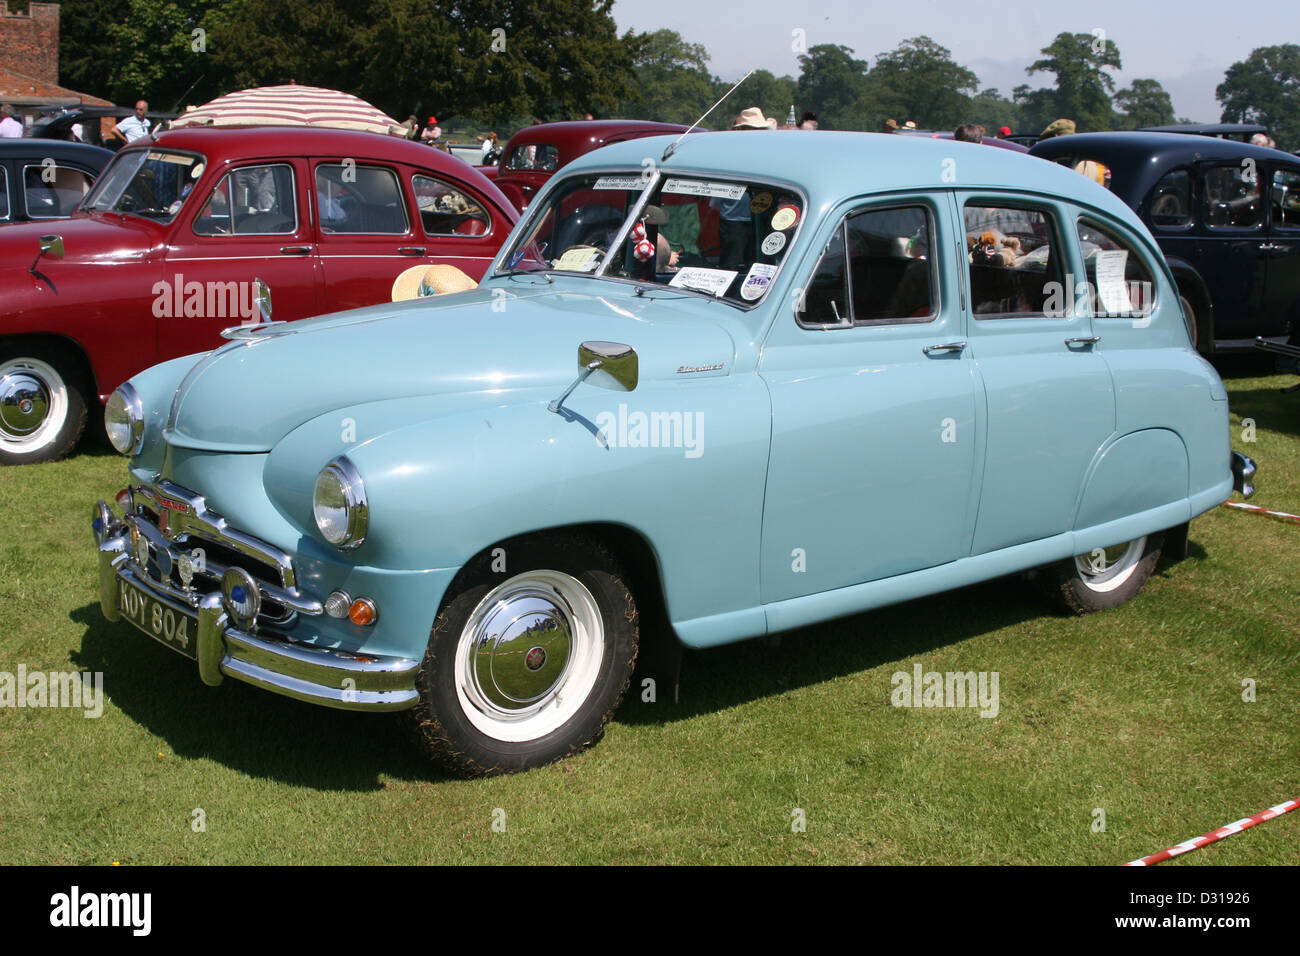 Vanguard Motor Car Stock Photo: 53504142 - Alamy